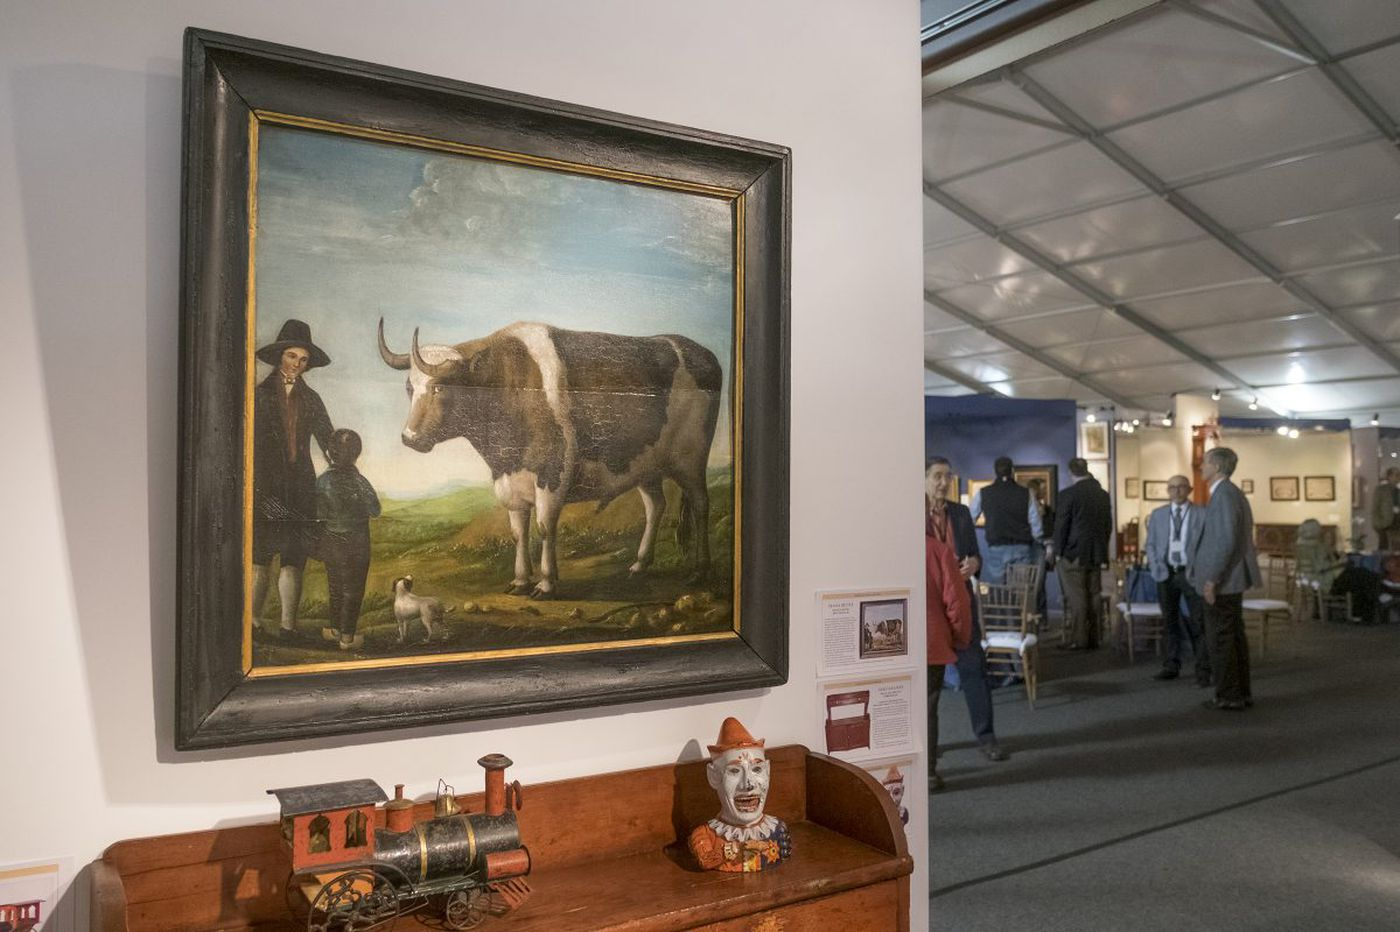 Philadelphia Antiques Show being handed off from Penn Medicine to the art museum